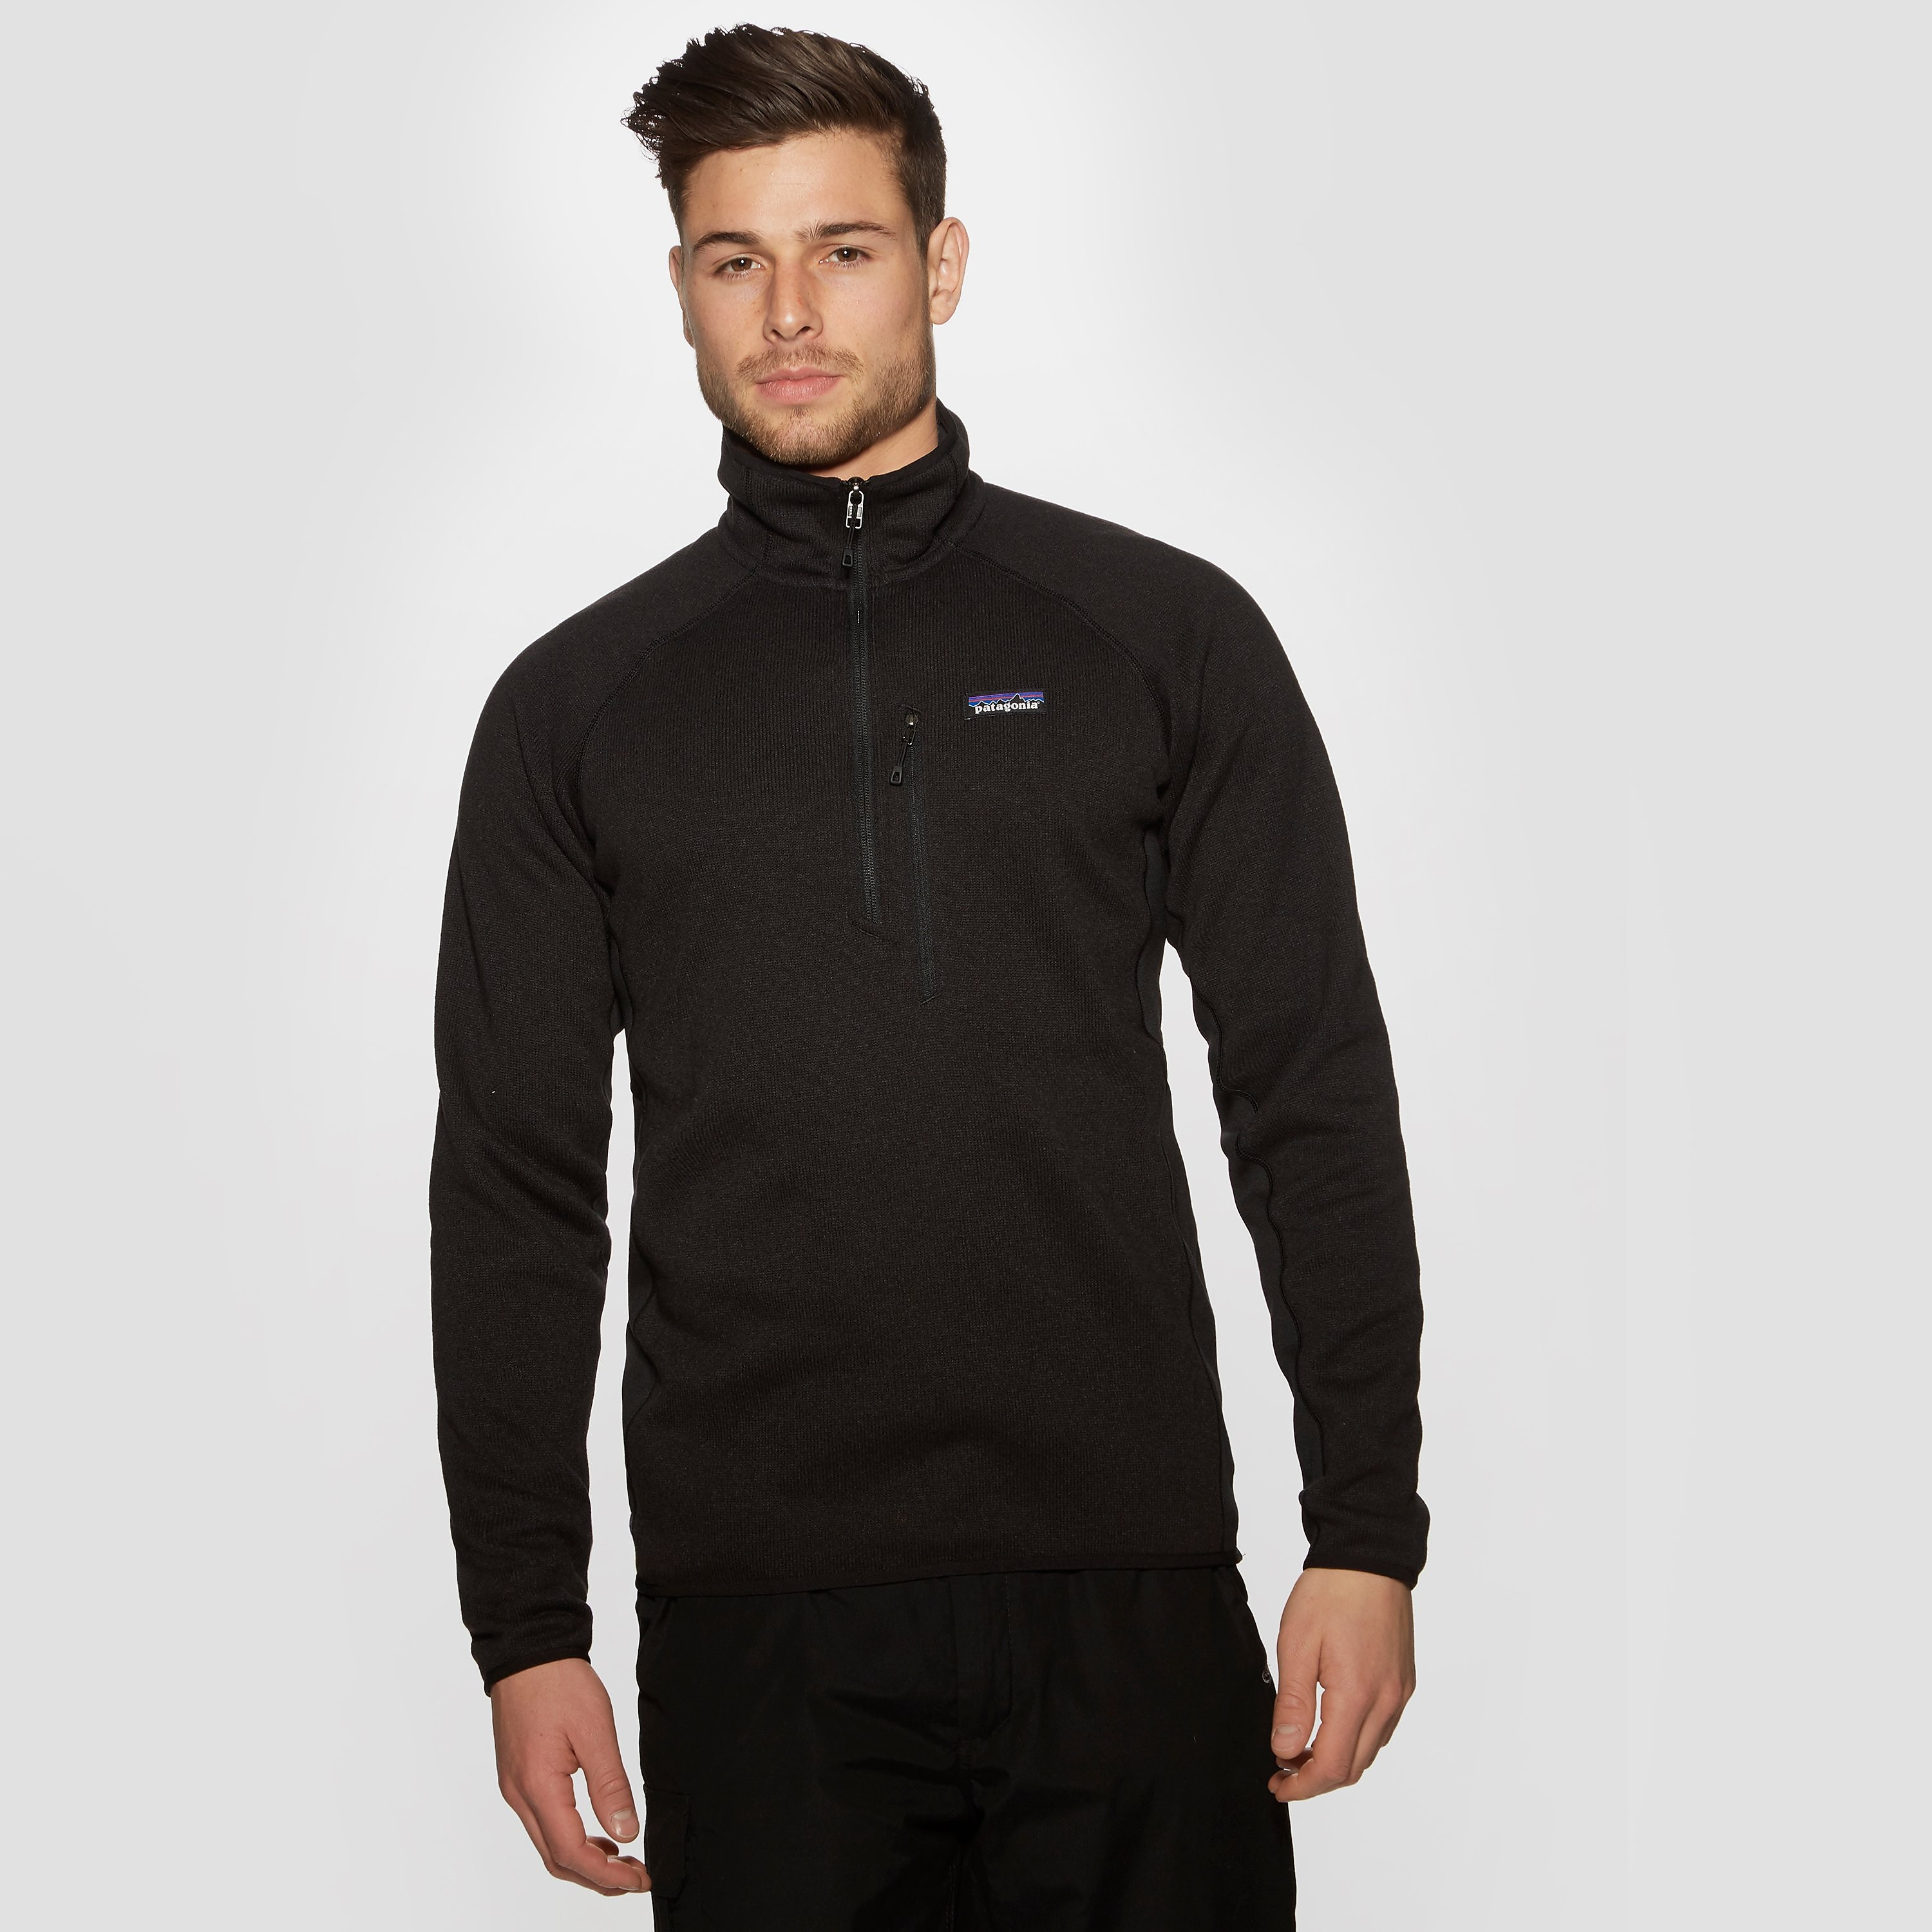 Patagonia Performance Better Men's Sweater